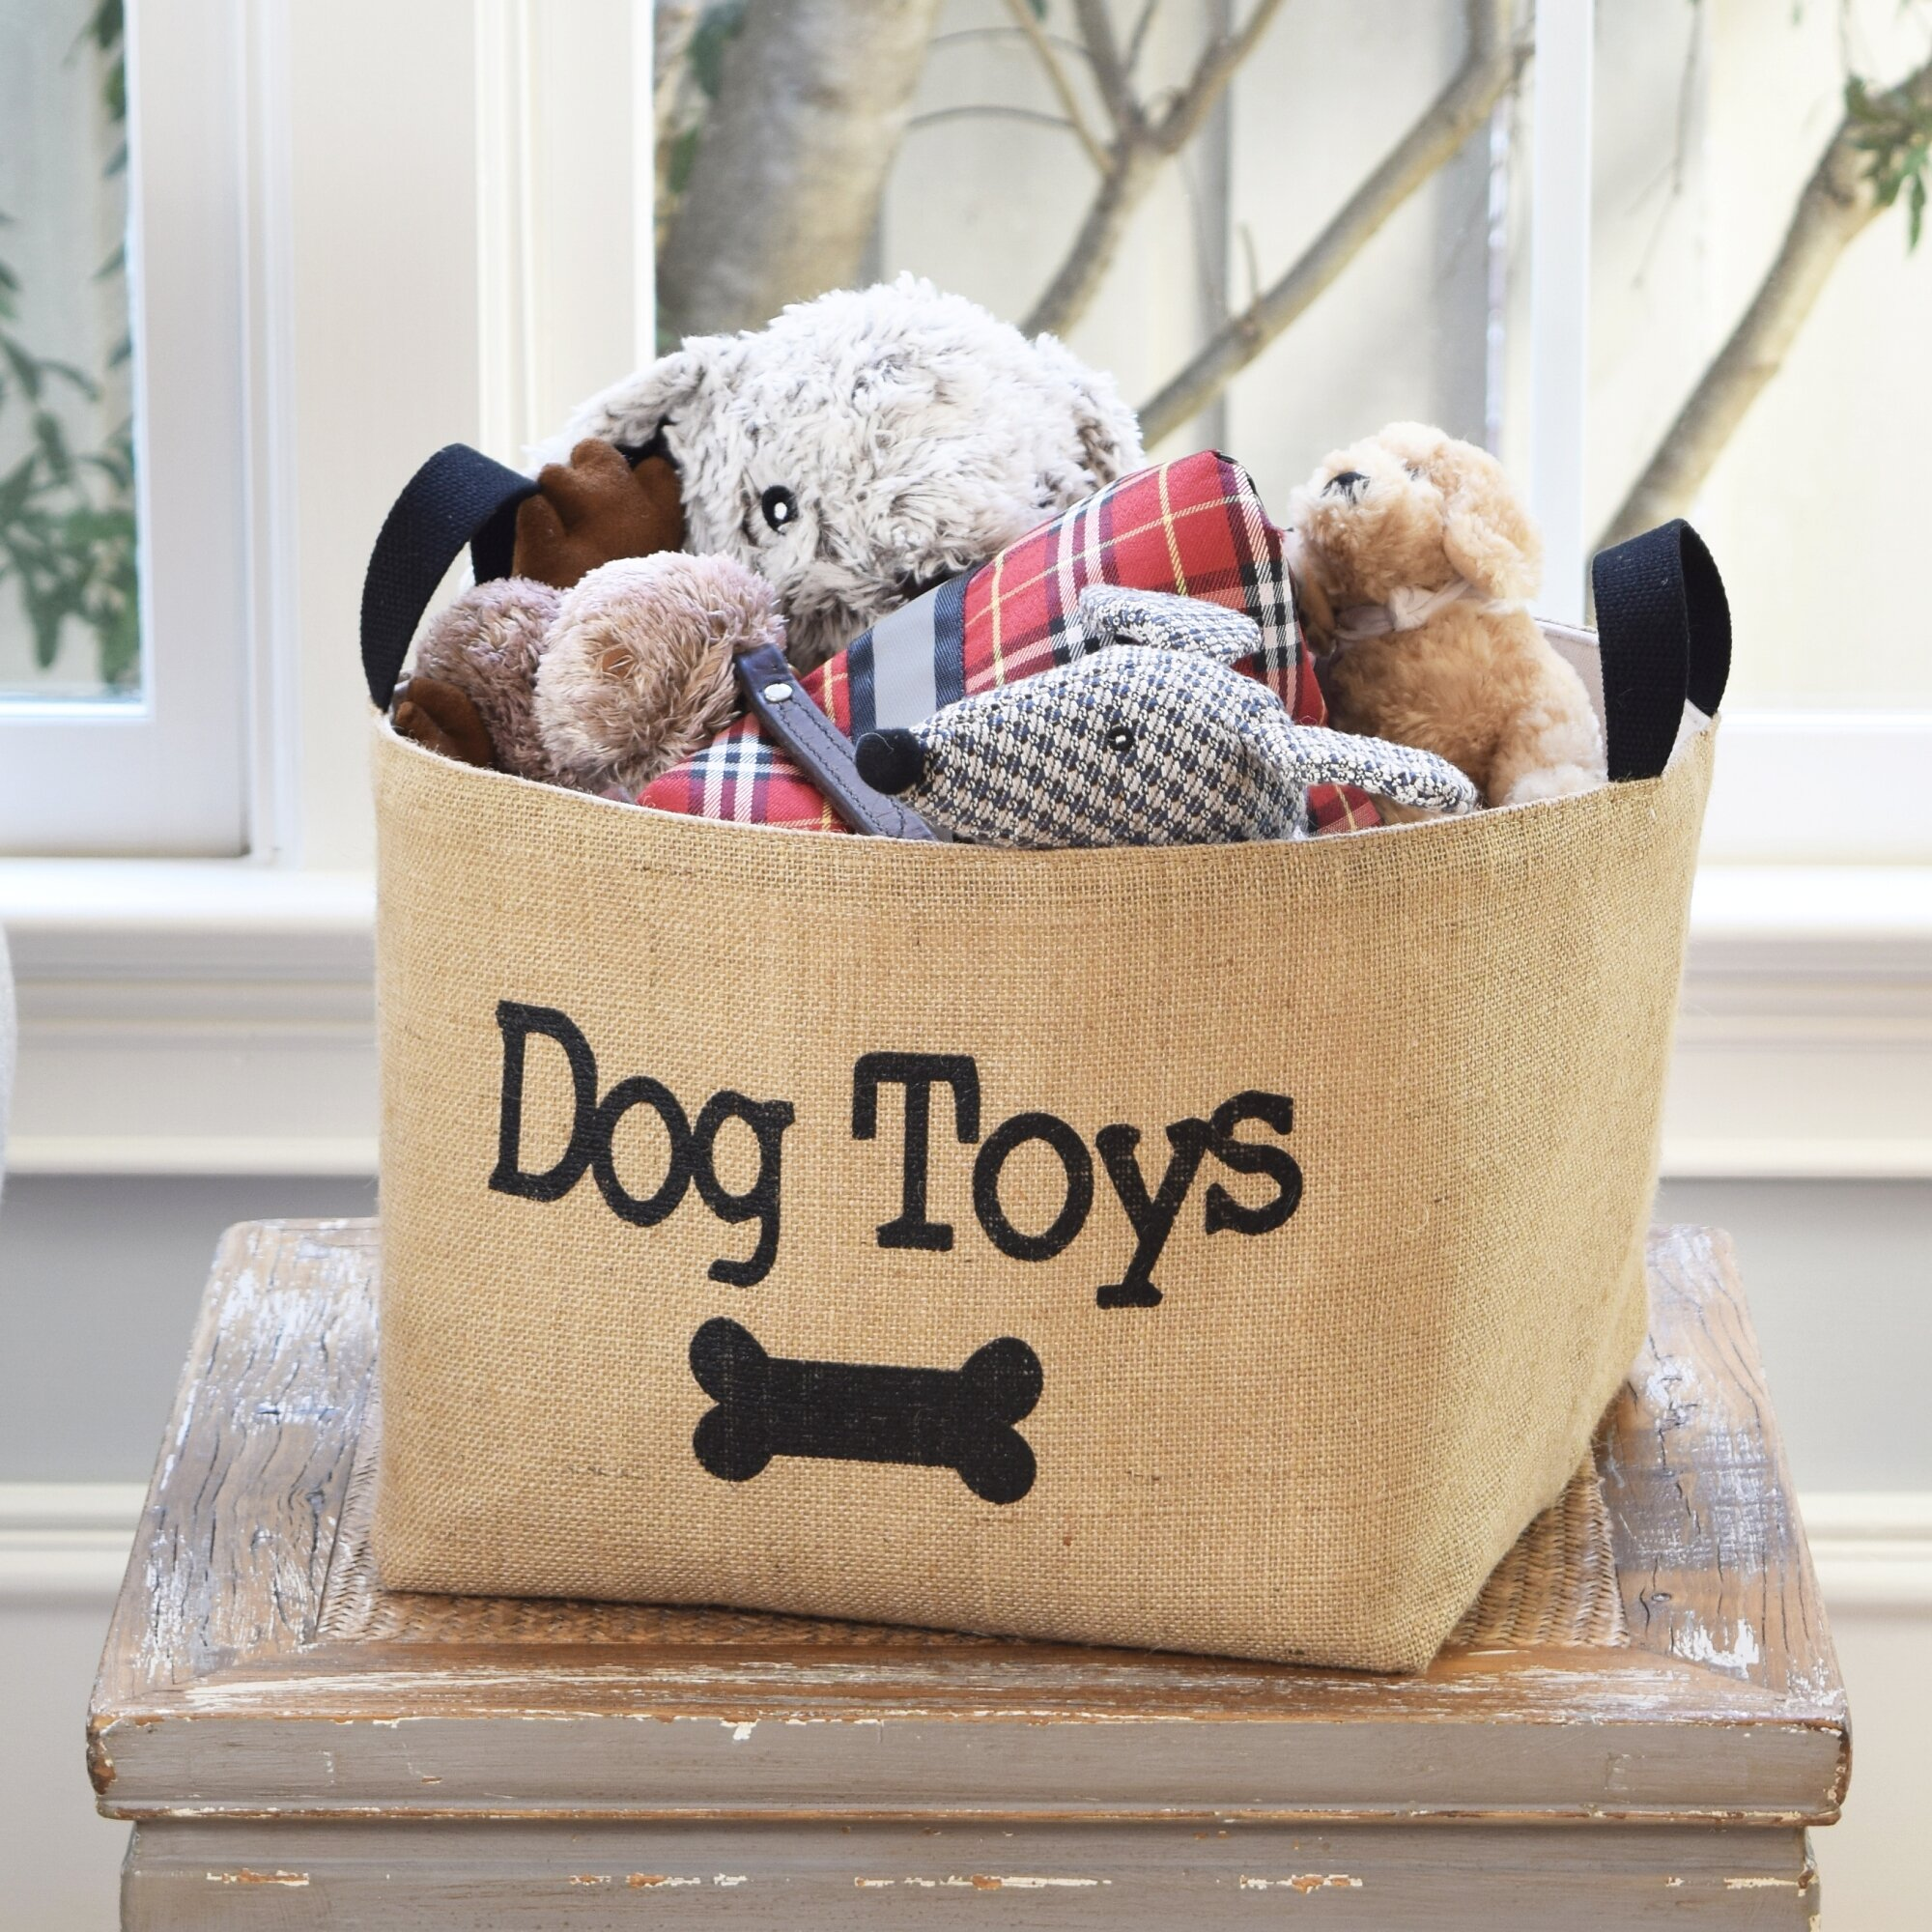 Rebrilliant Dog Toys Burlap Storage Basket Reviews